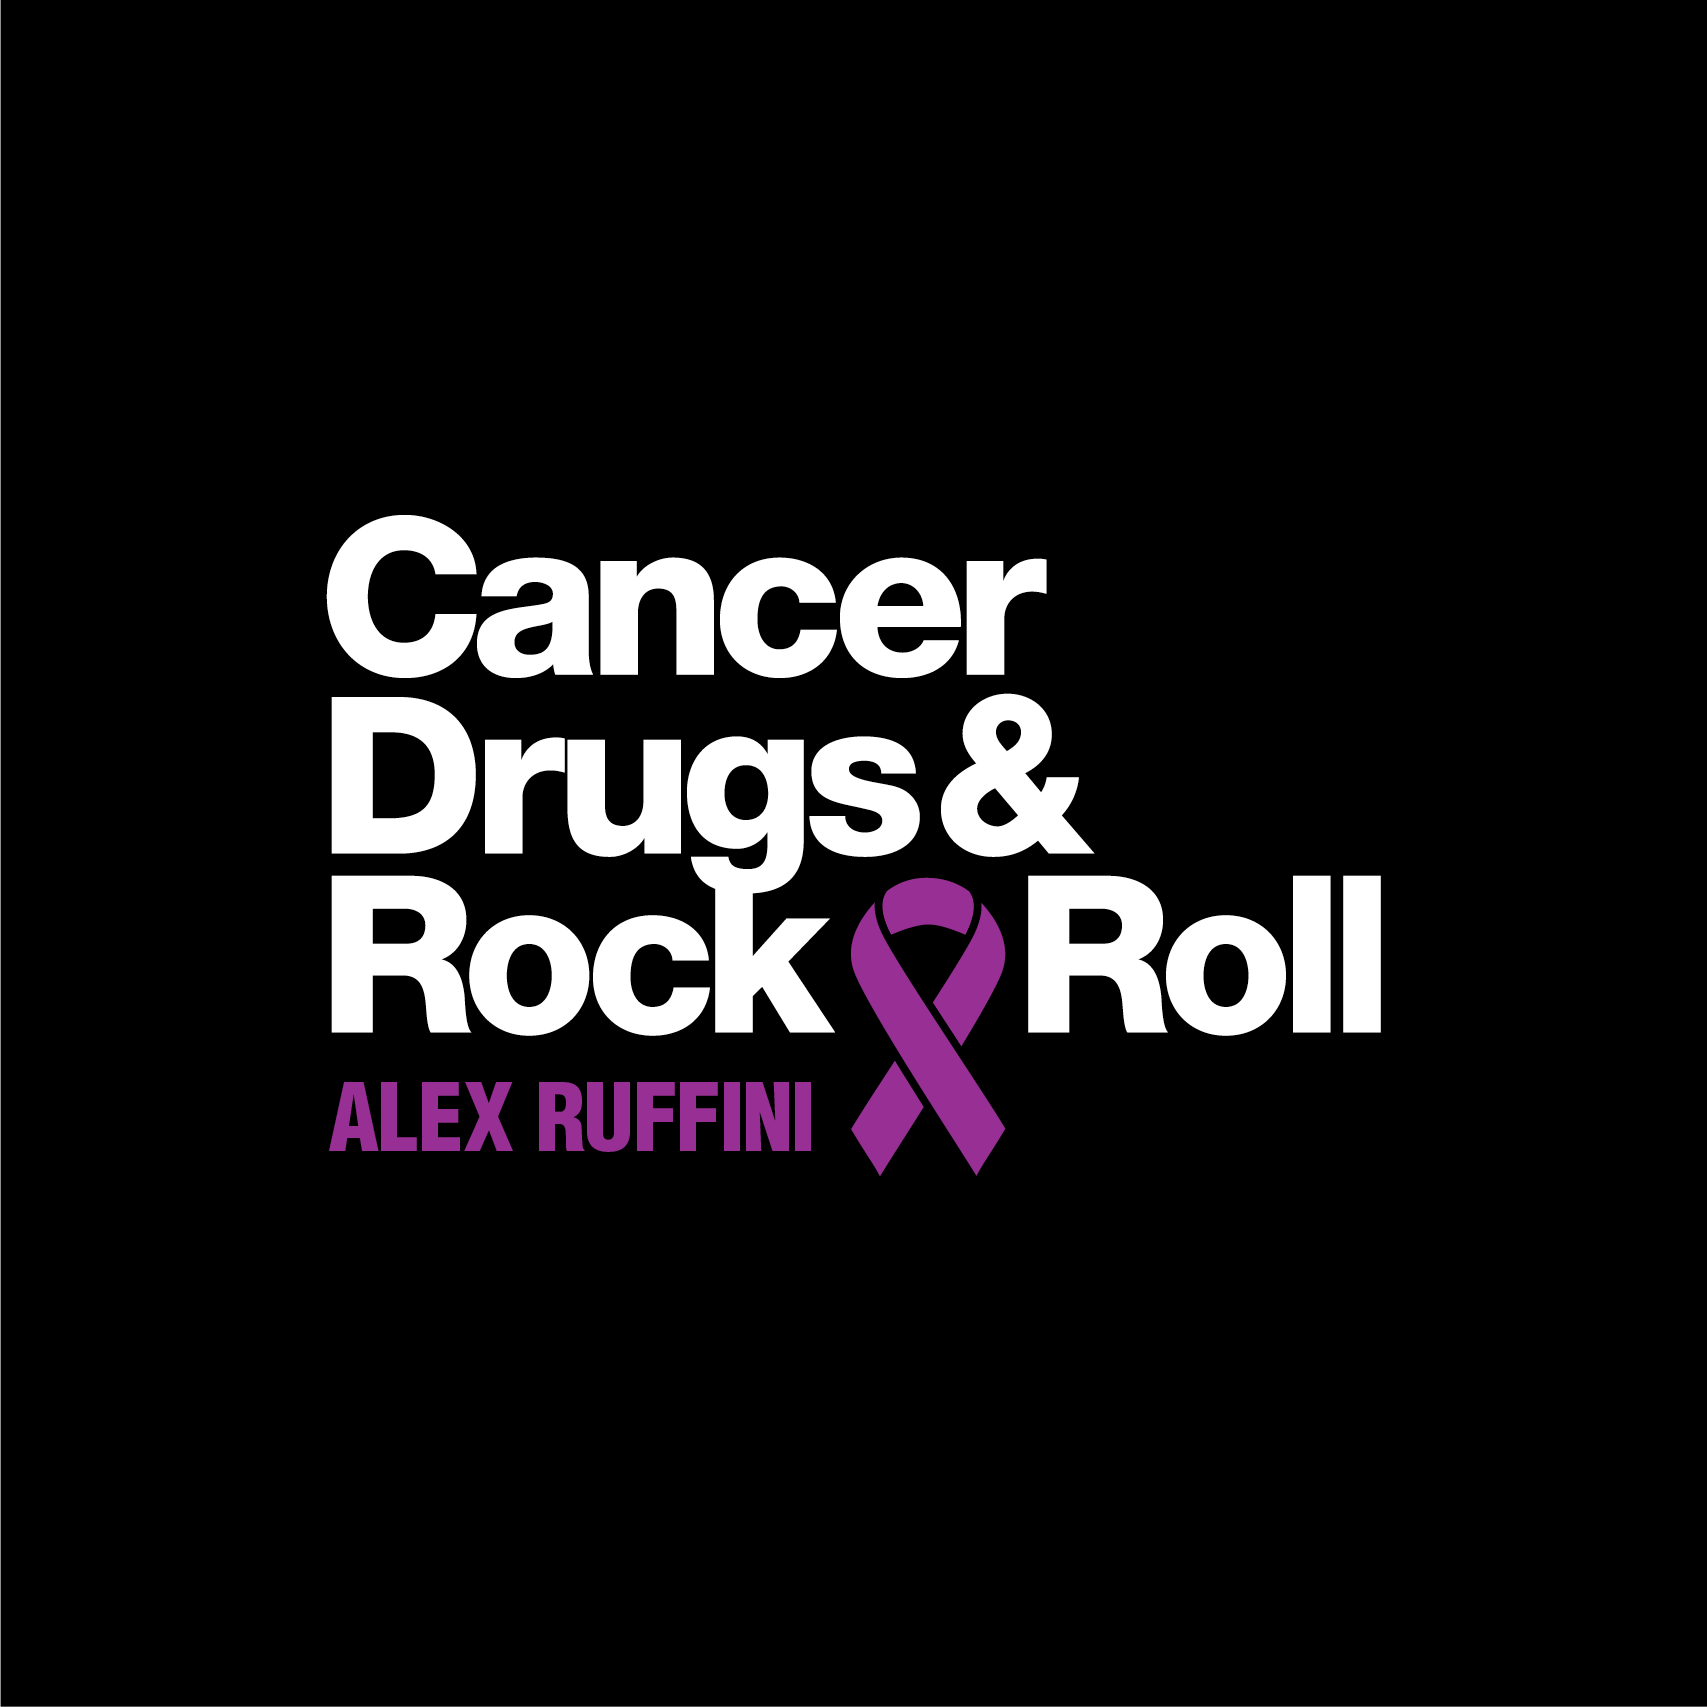 Cancer Drugs & Rock and Roll